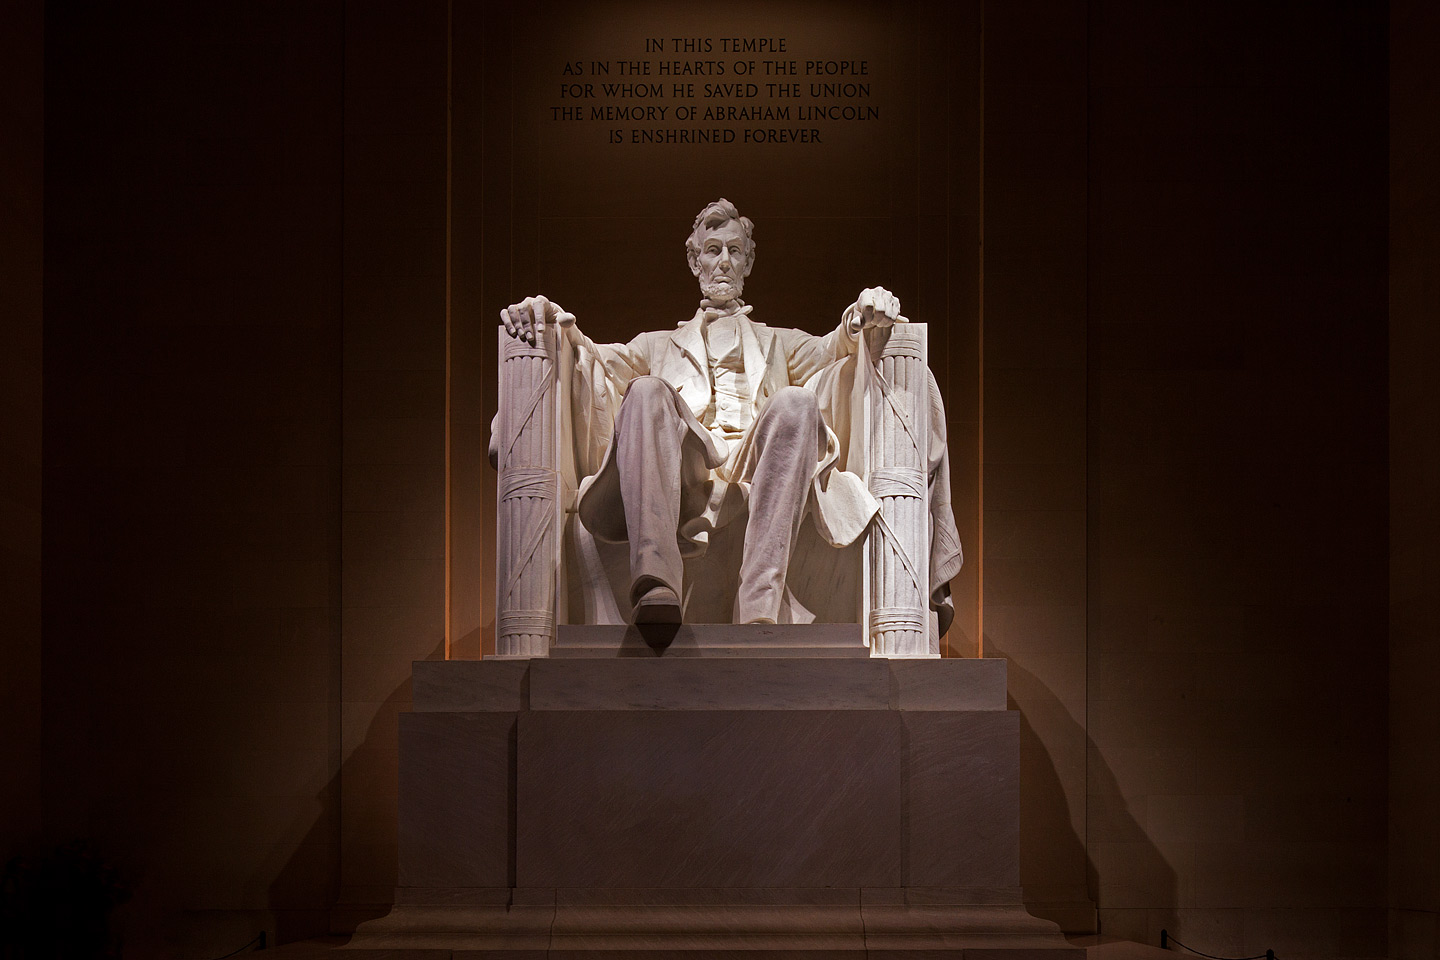 a massive sculpture of abraham lincoln at the lincoln memorial in washington dc photographed at night by Jacob Rosenfeld